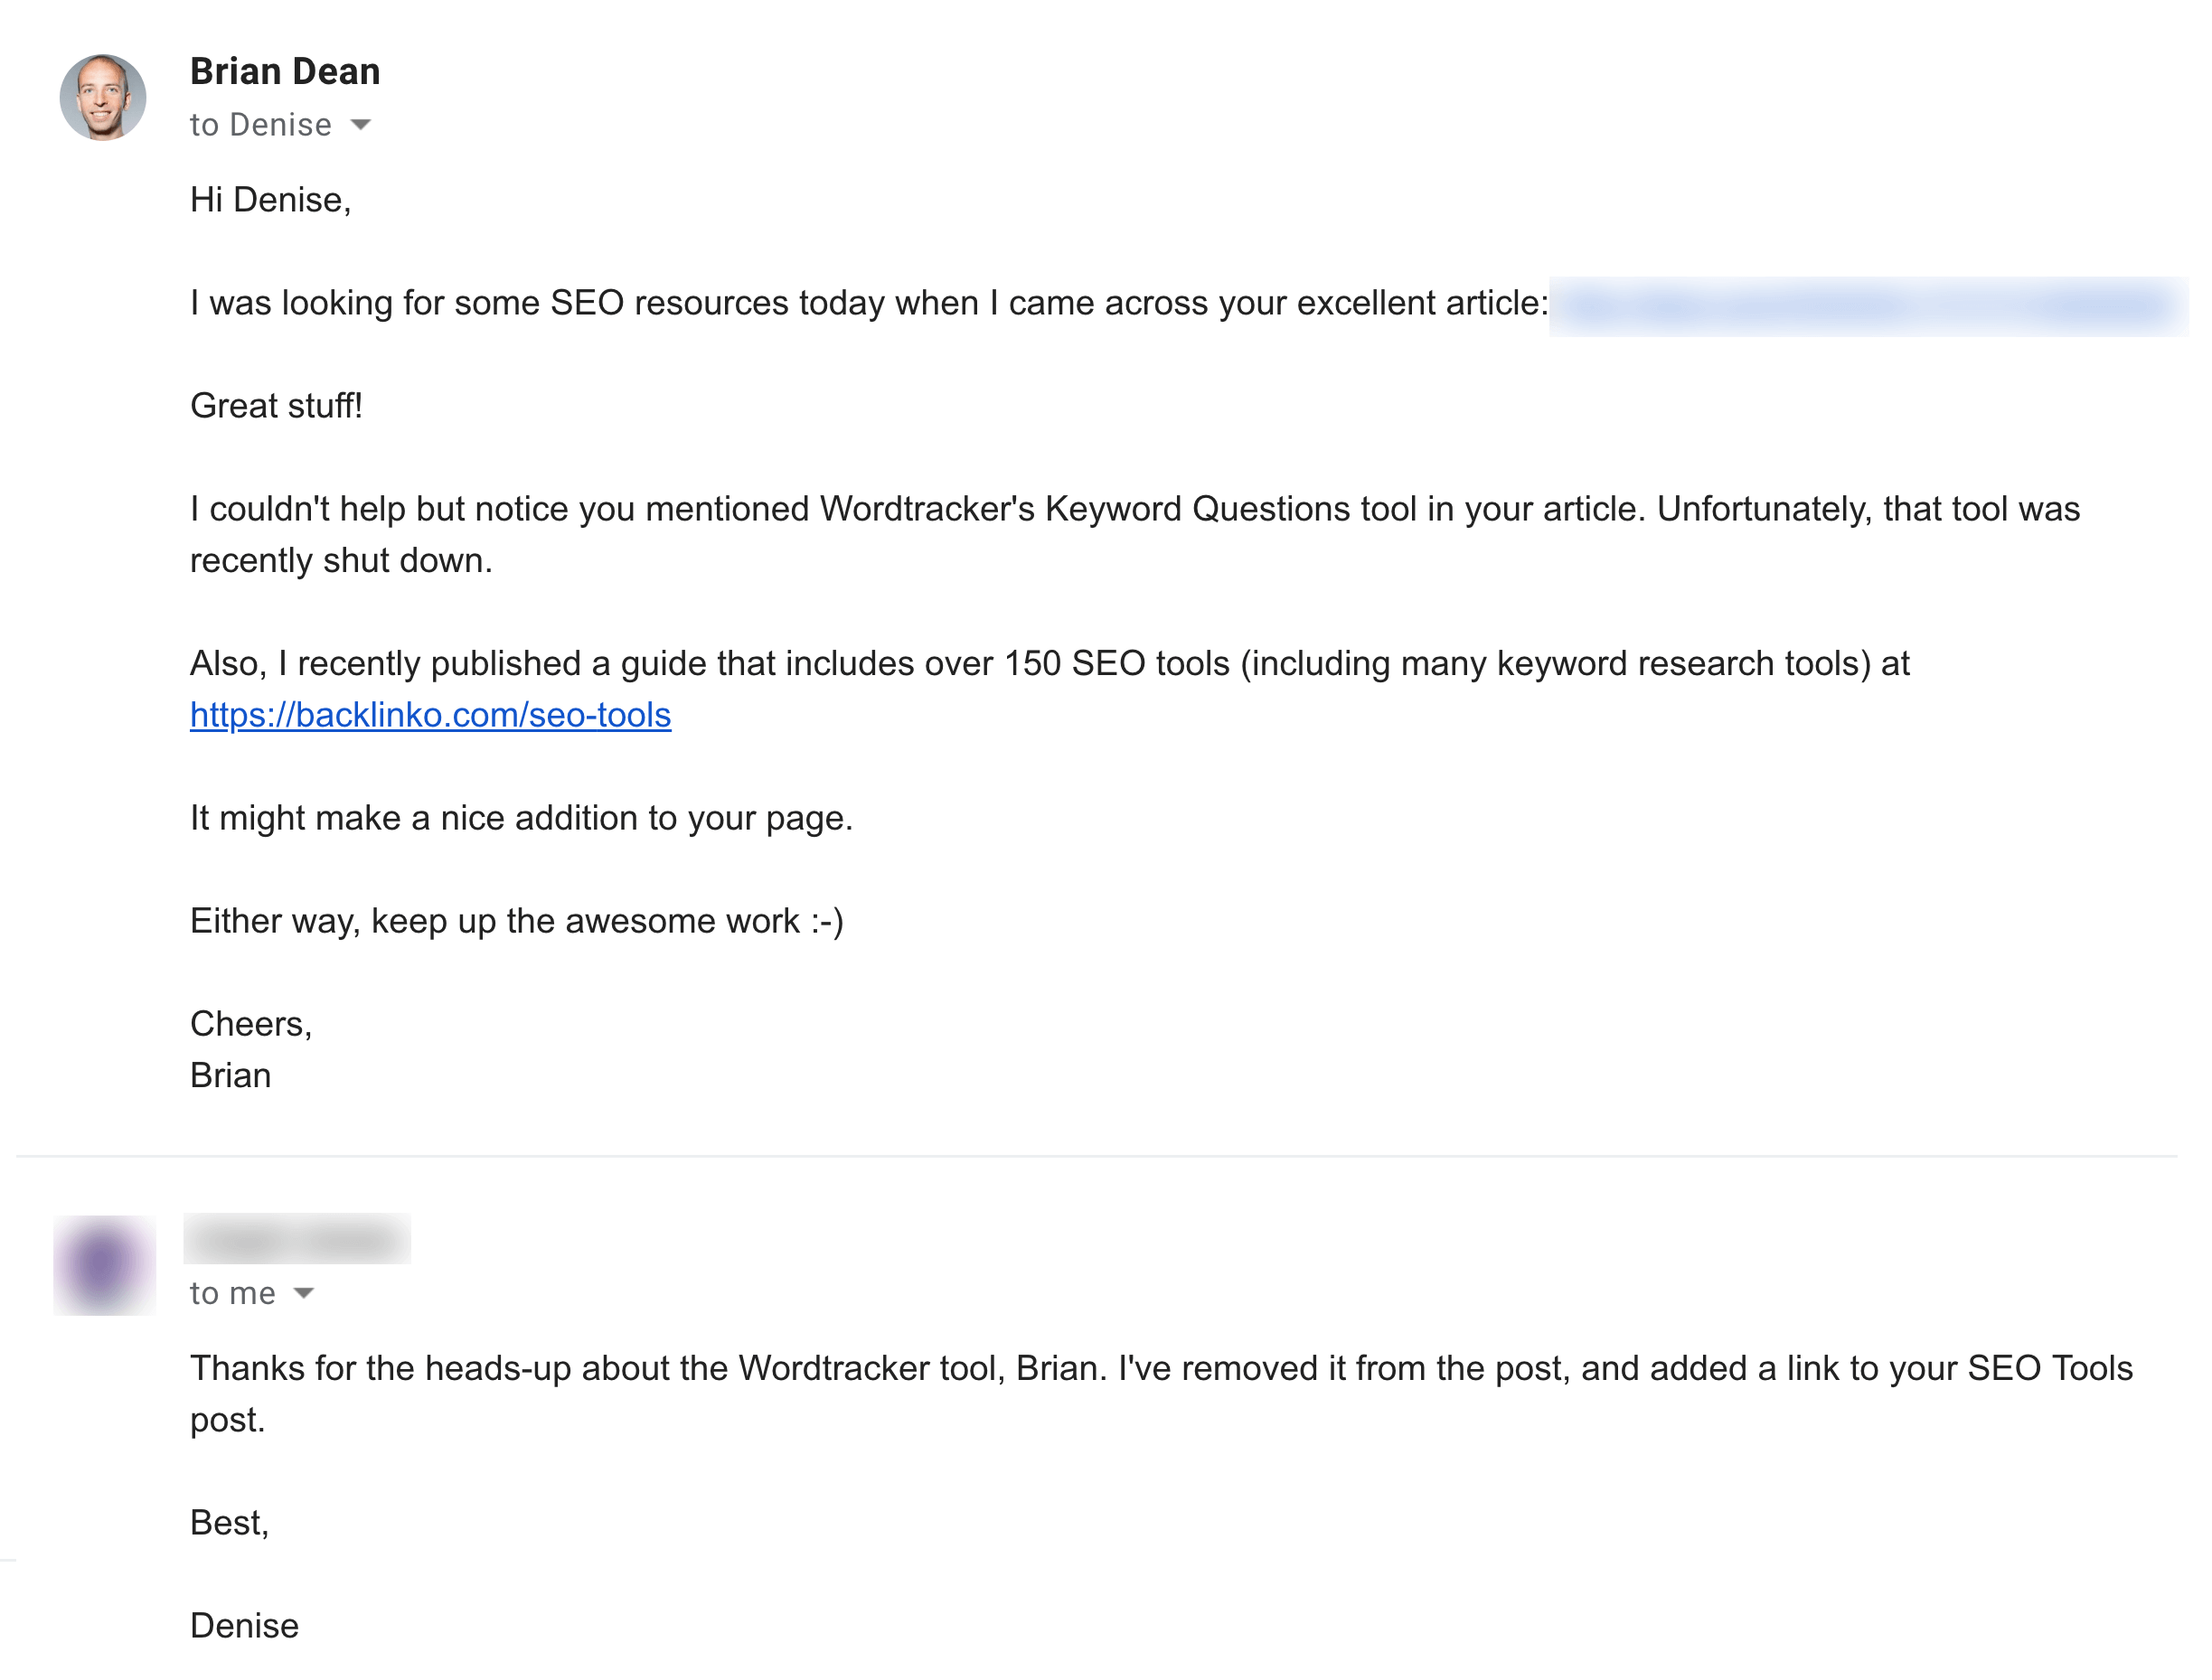 Example of a very specific outreach email